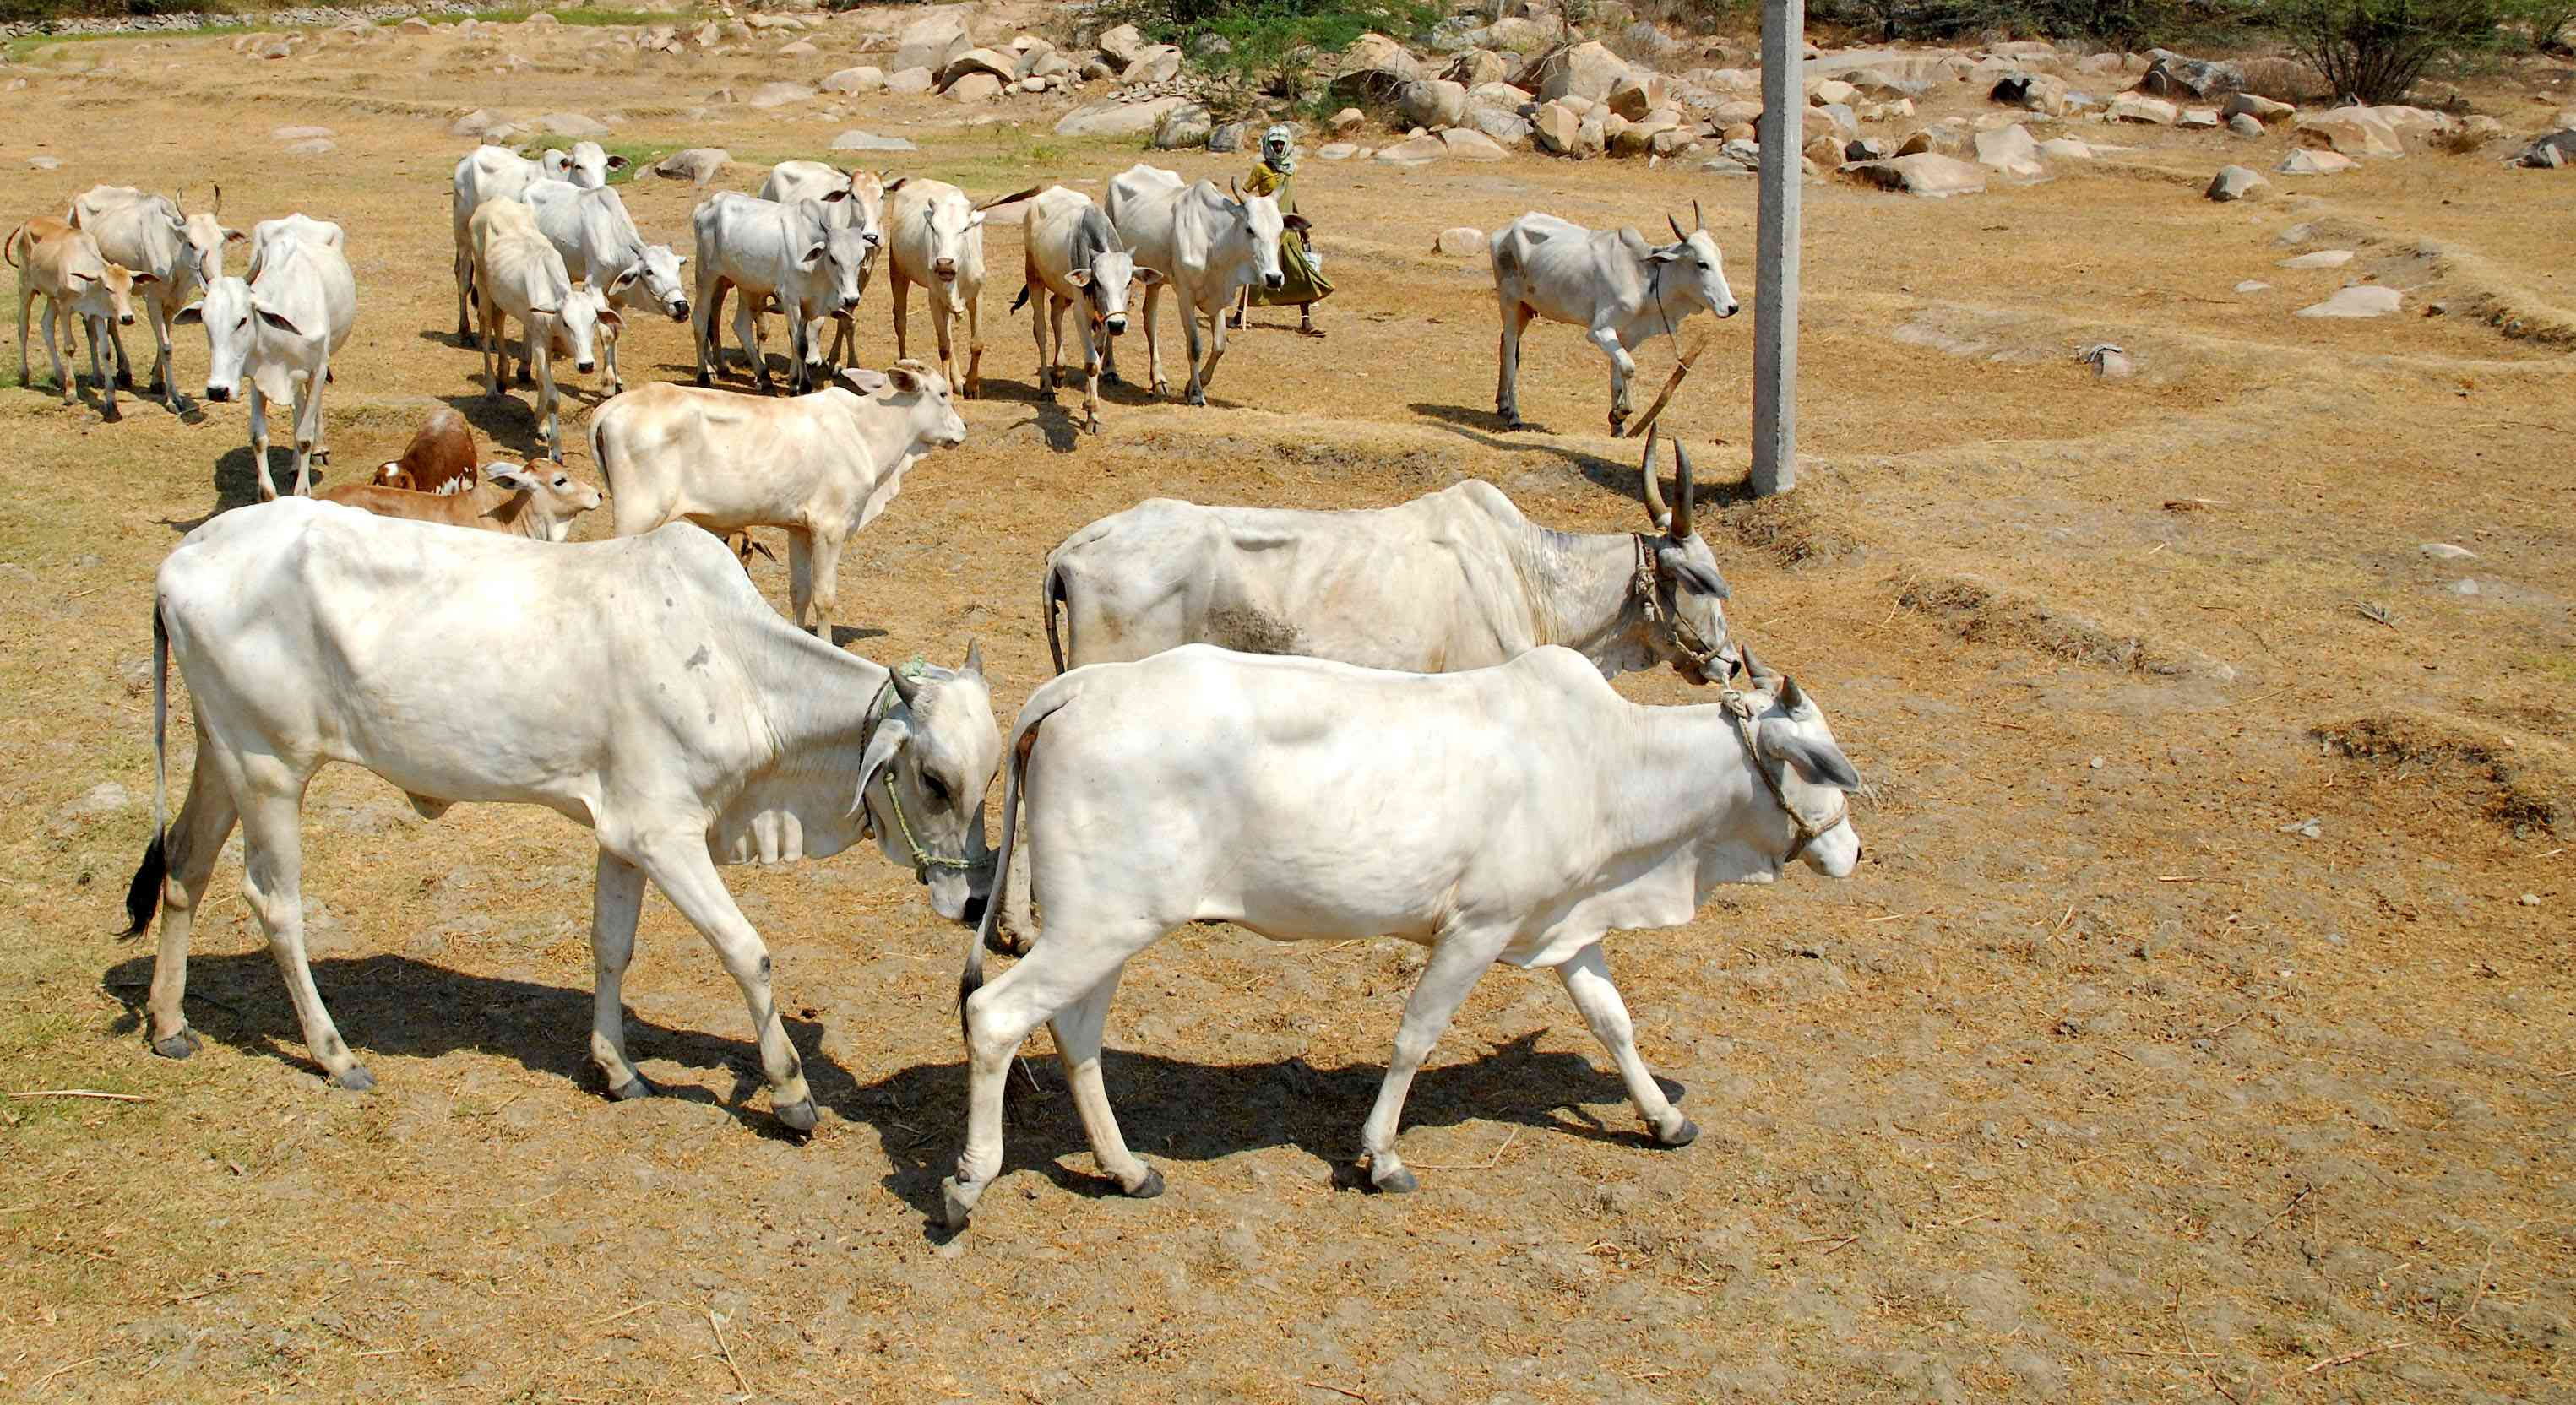 sale purchase of cattle from e-commerce portals soon